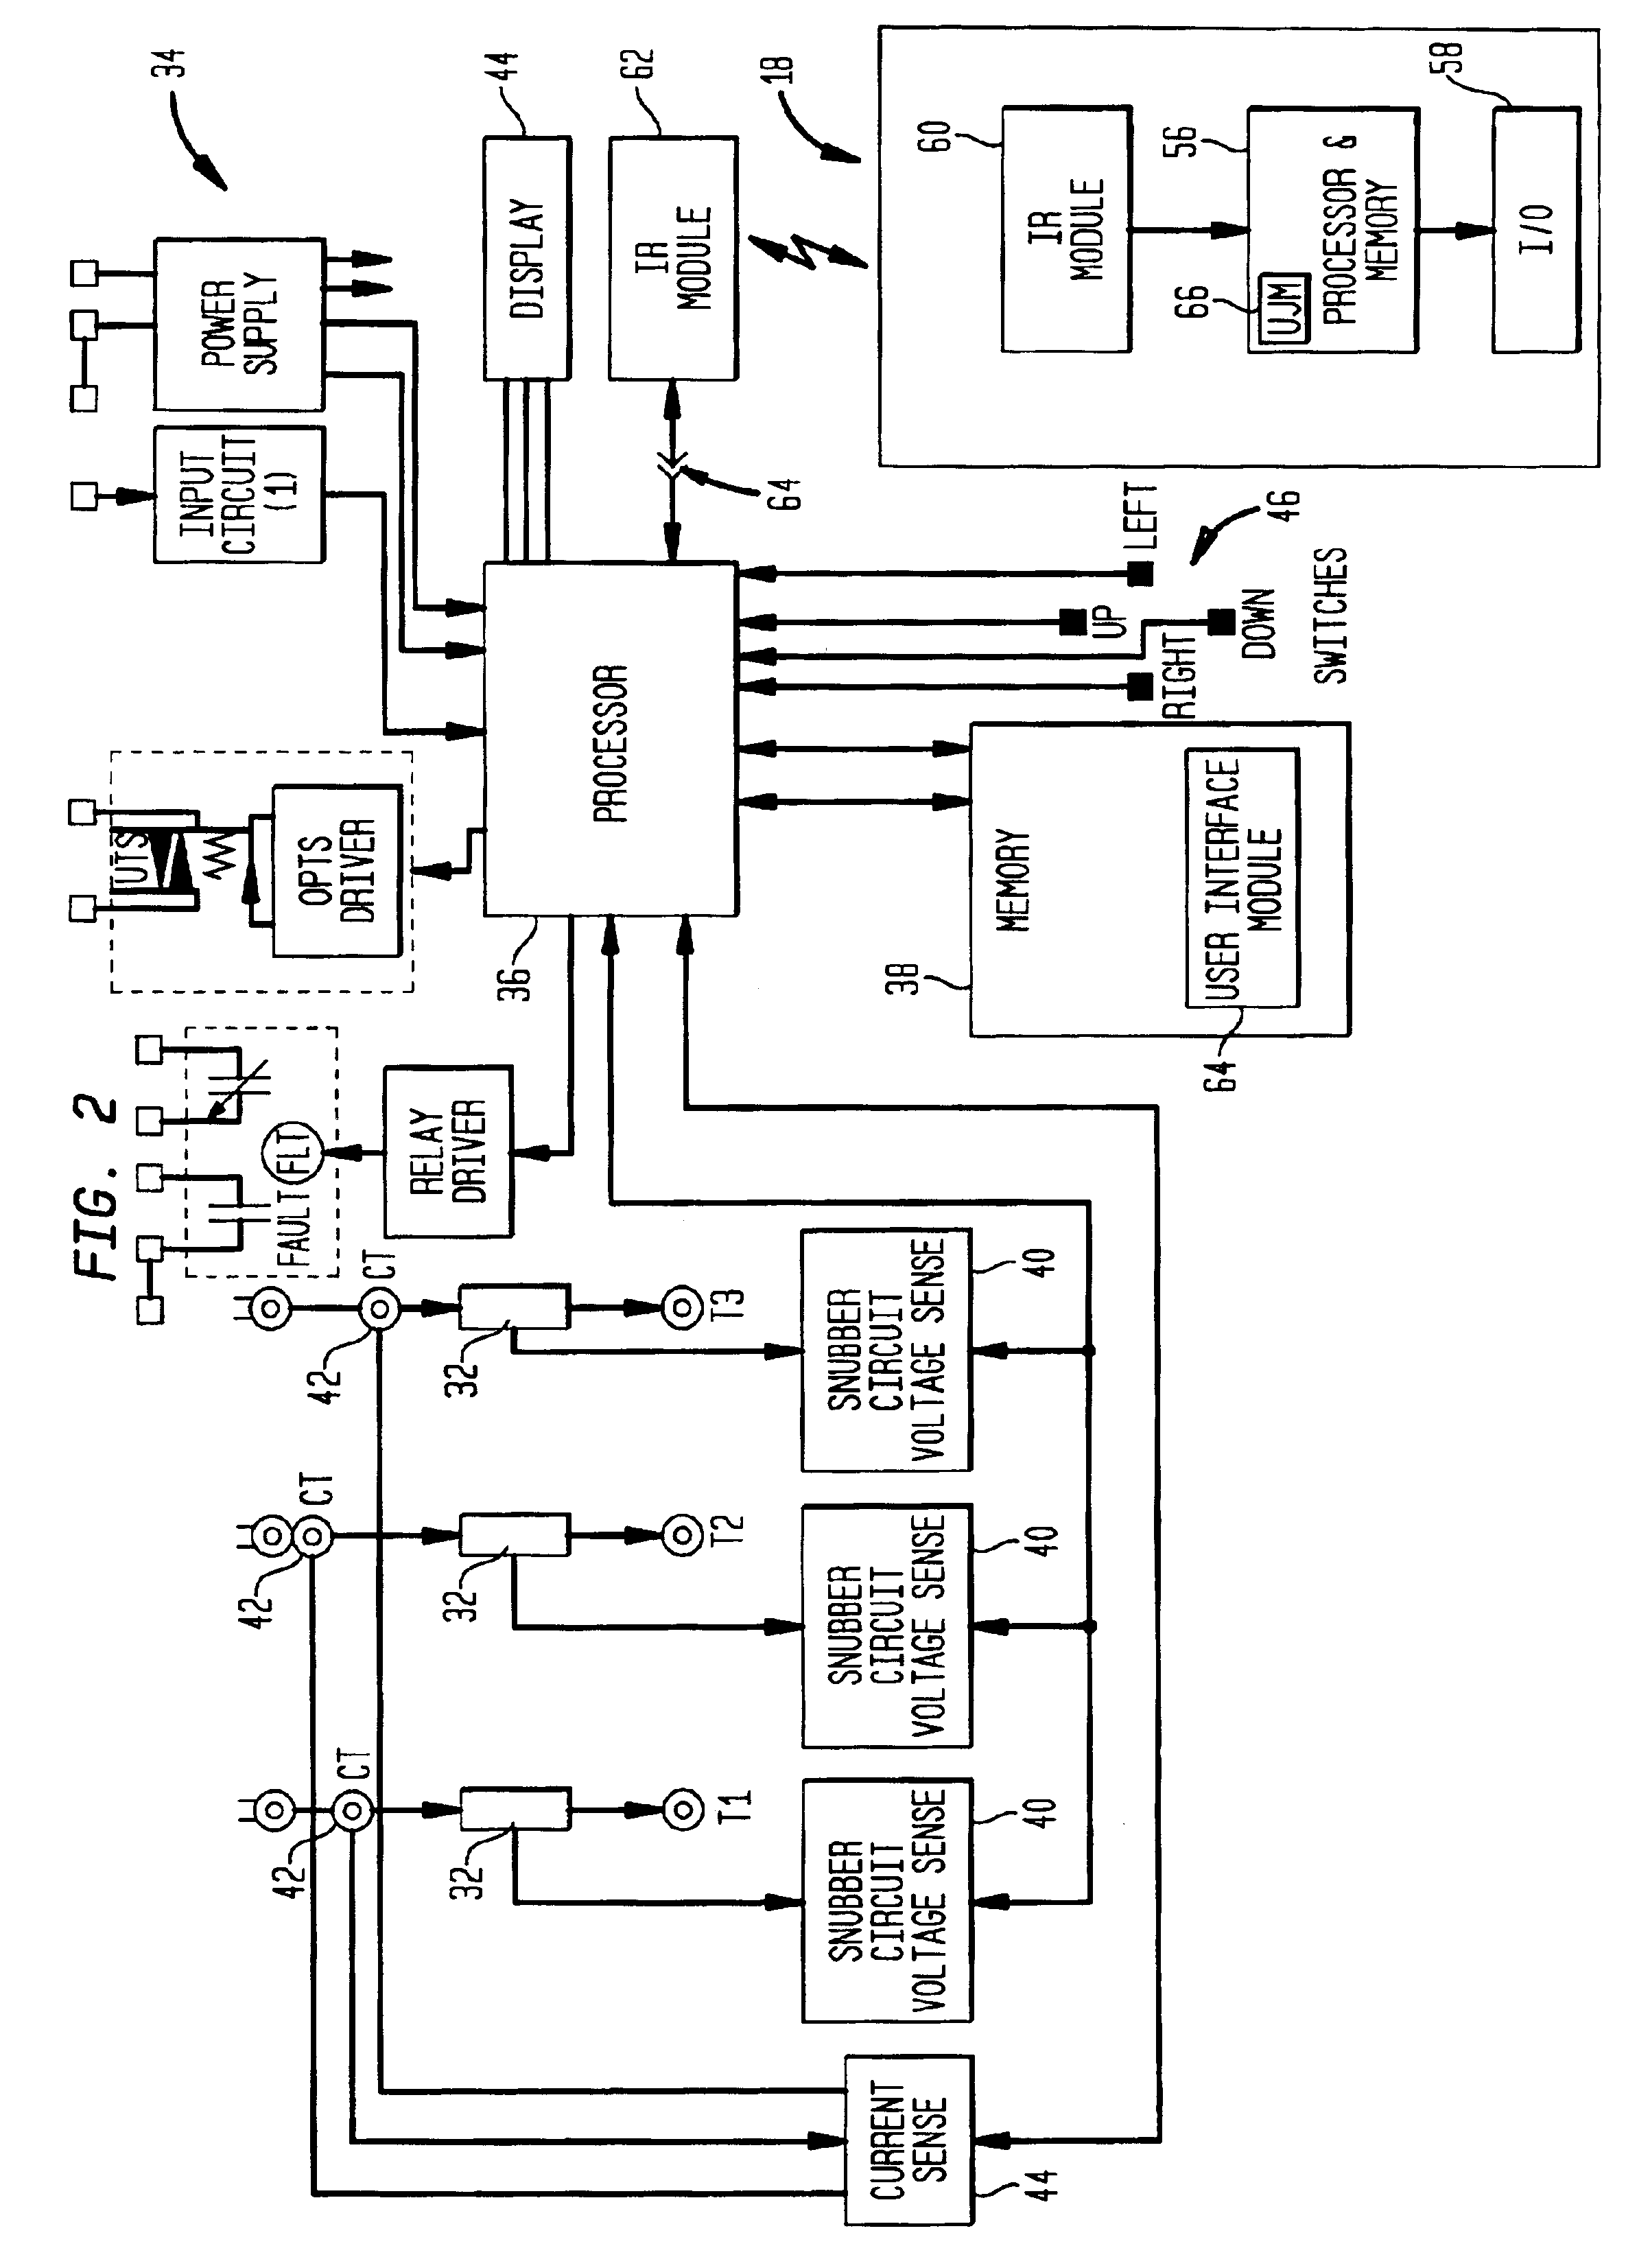 US06894452 20050517 D00002 patent us6894452 system and method for configurable motor altivar 71 wiring diagram at gsmx.co